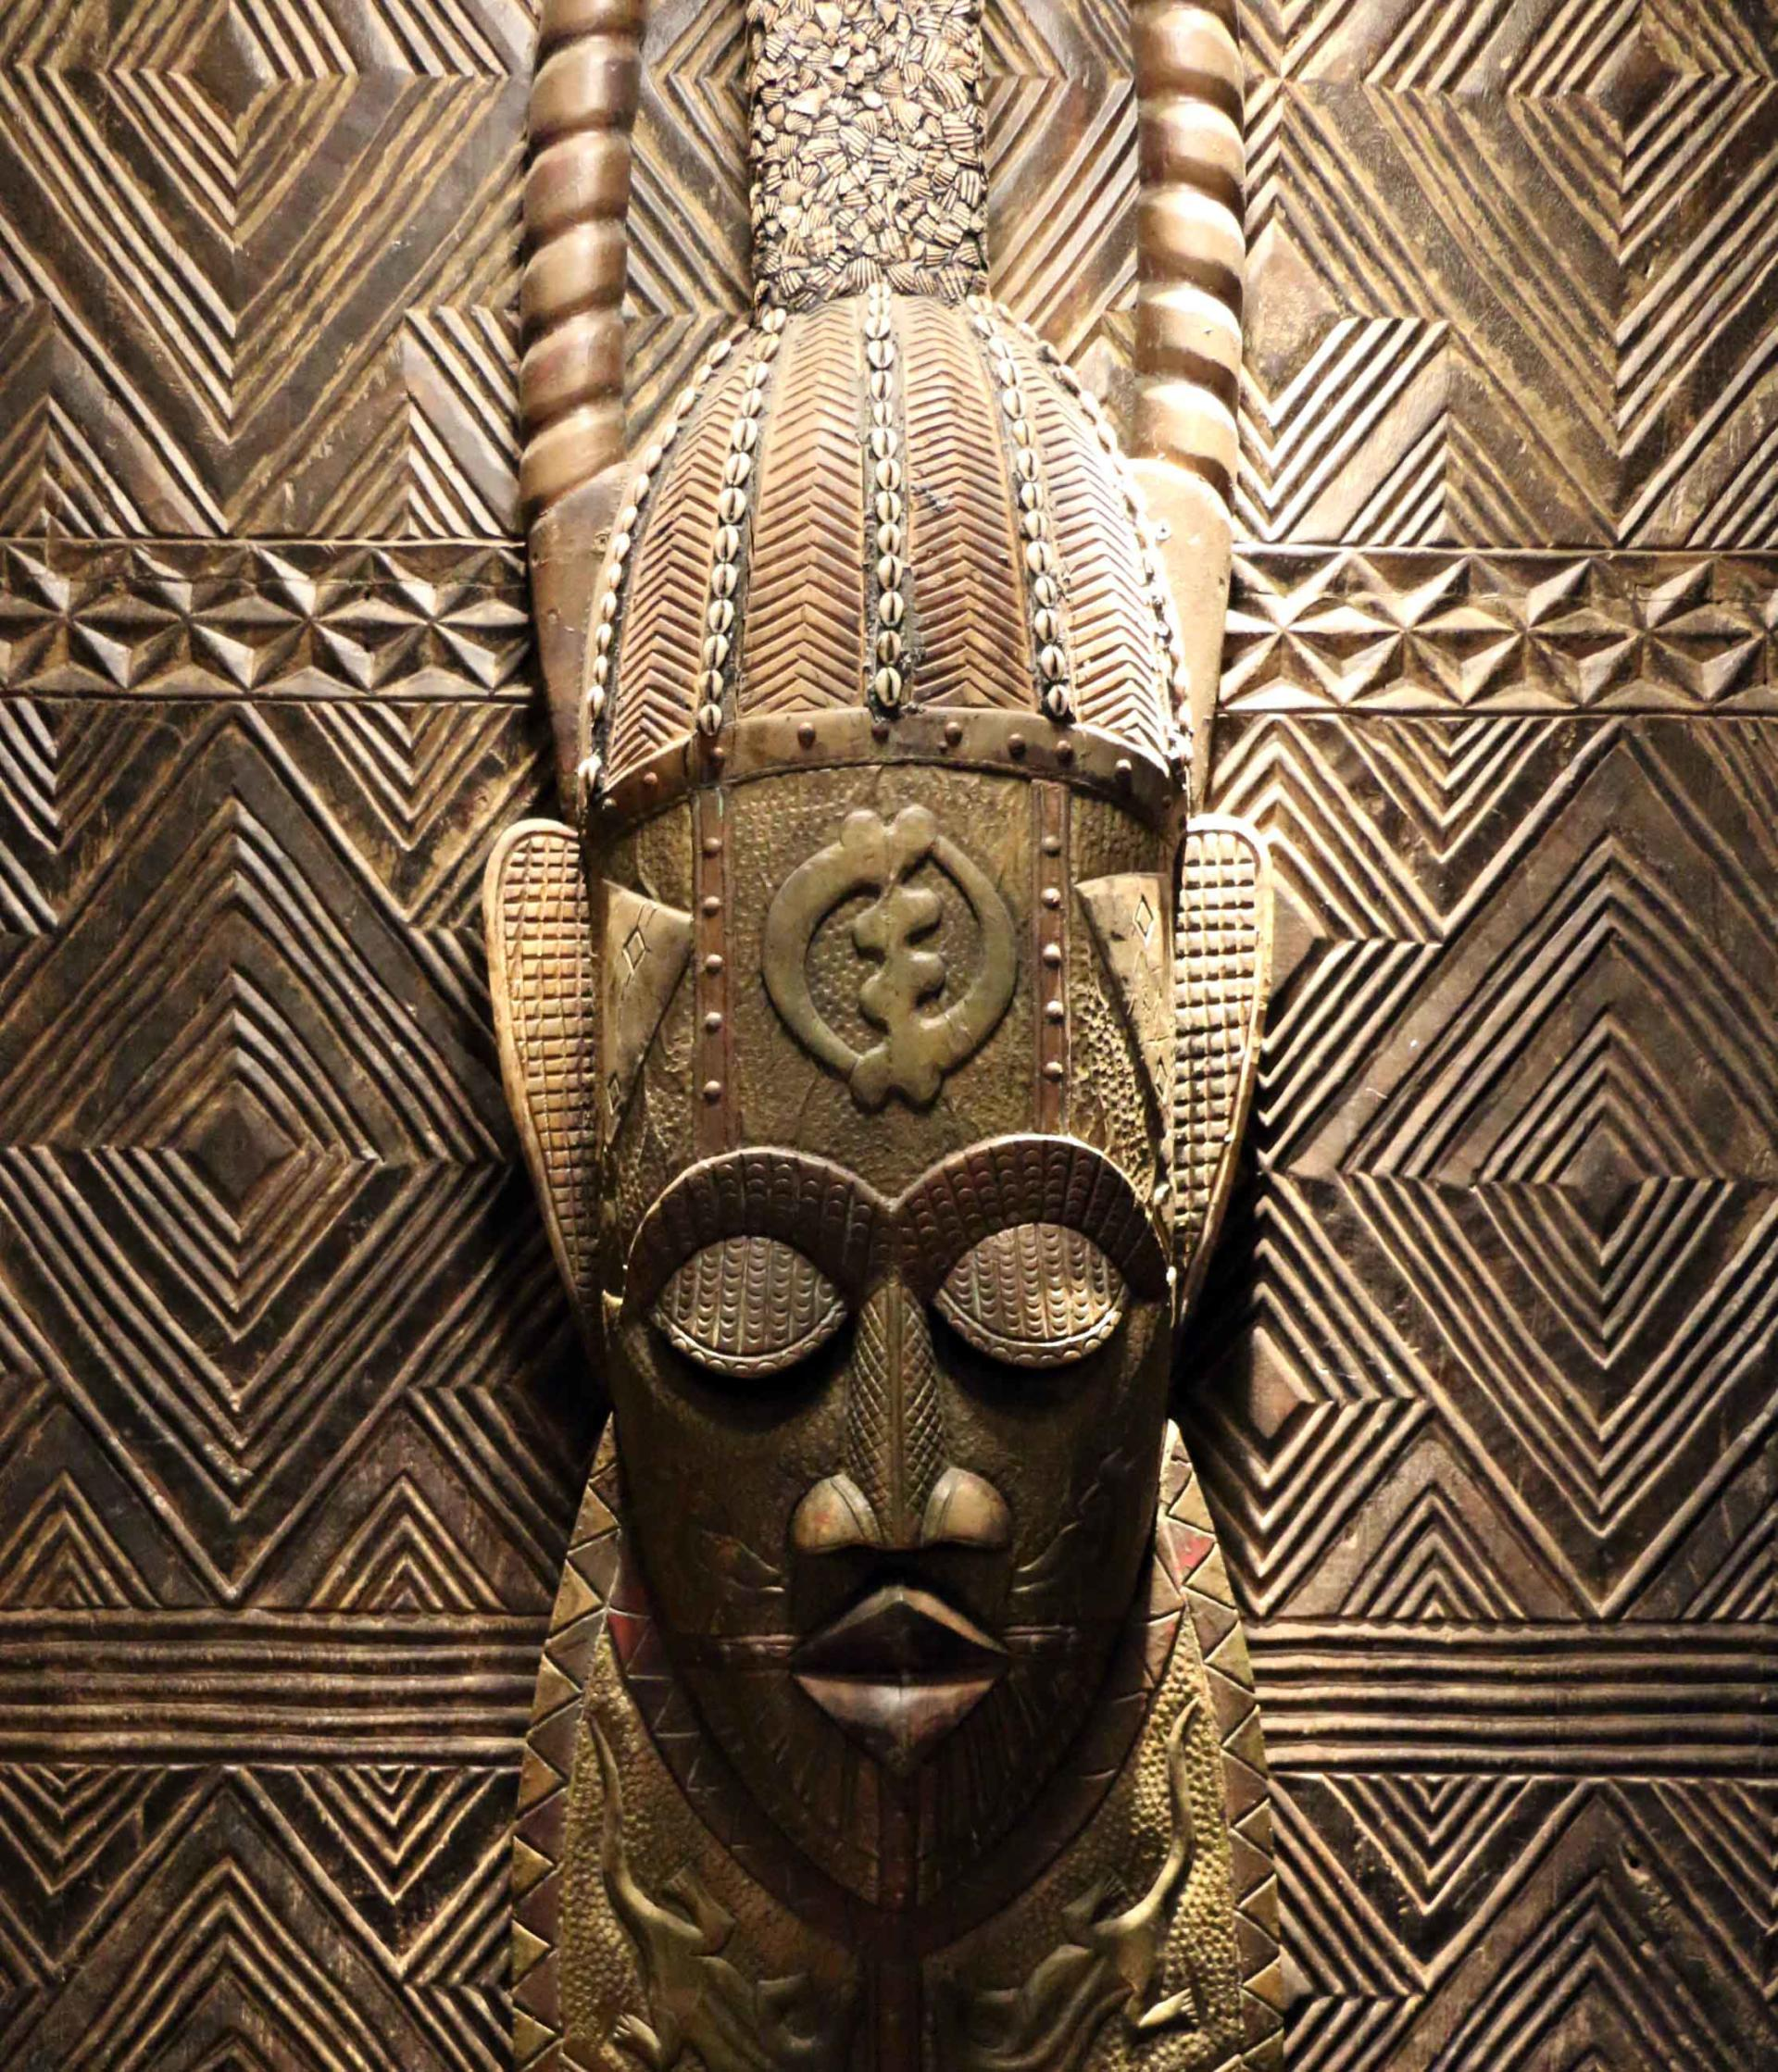 Shaka Zulu Restaurant Review: A Taste Of South Africa In